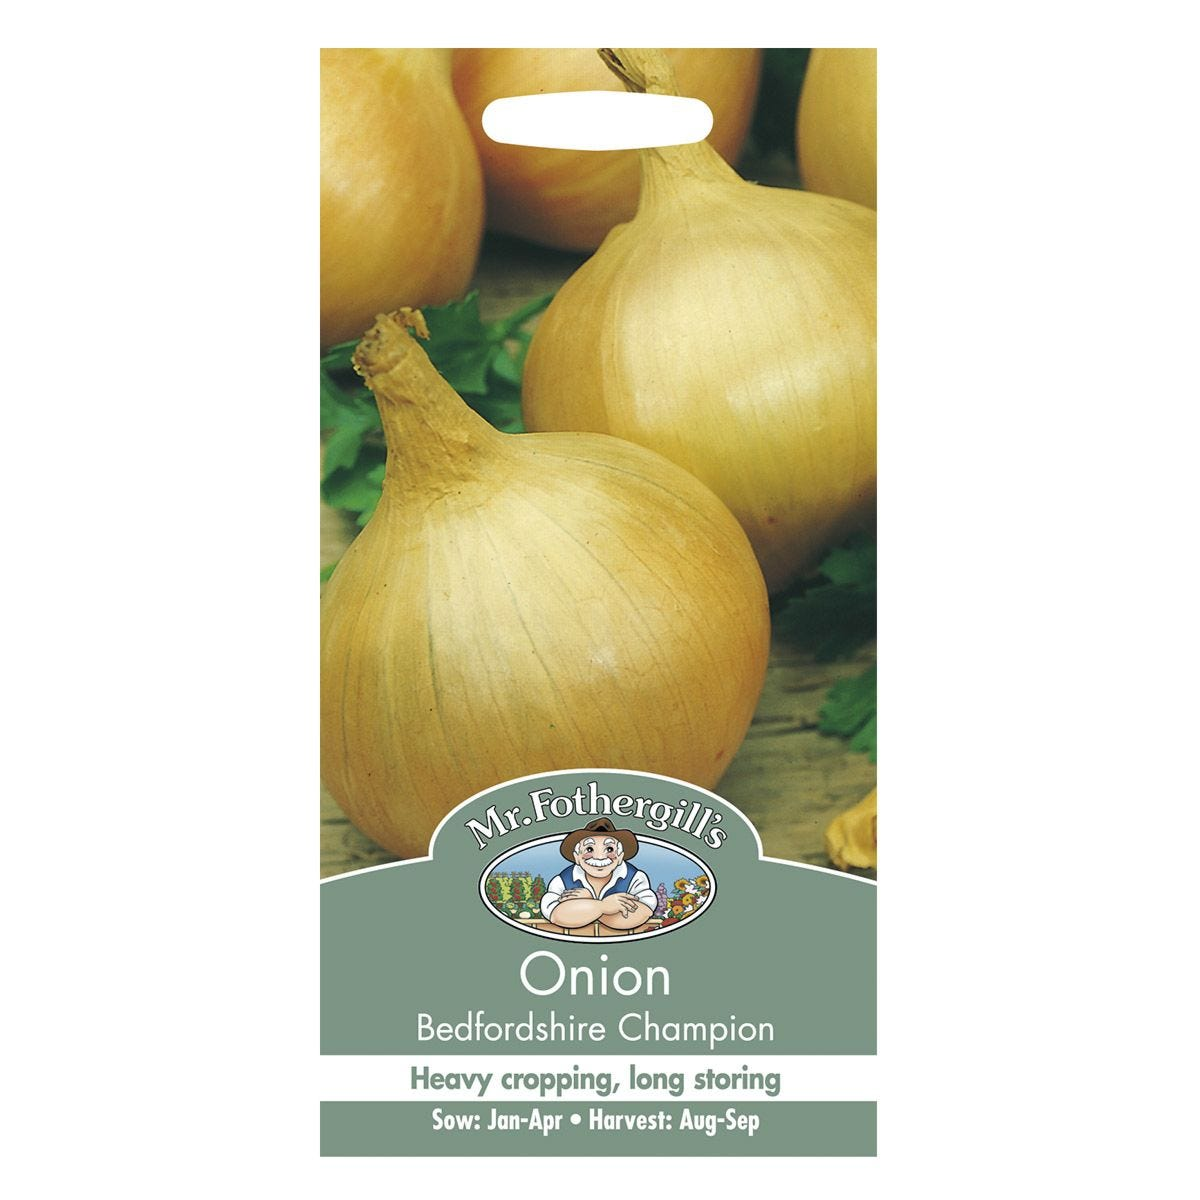 Mr Fothergill's Onion Bedfordshire Champion Seeds